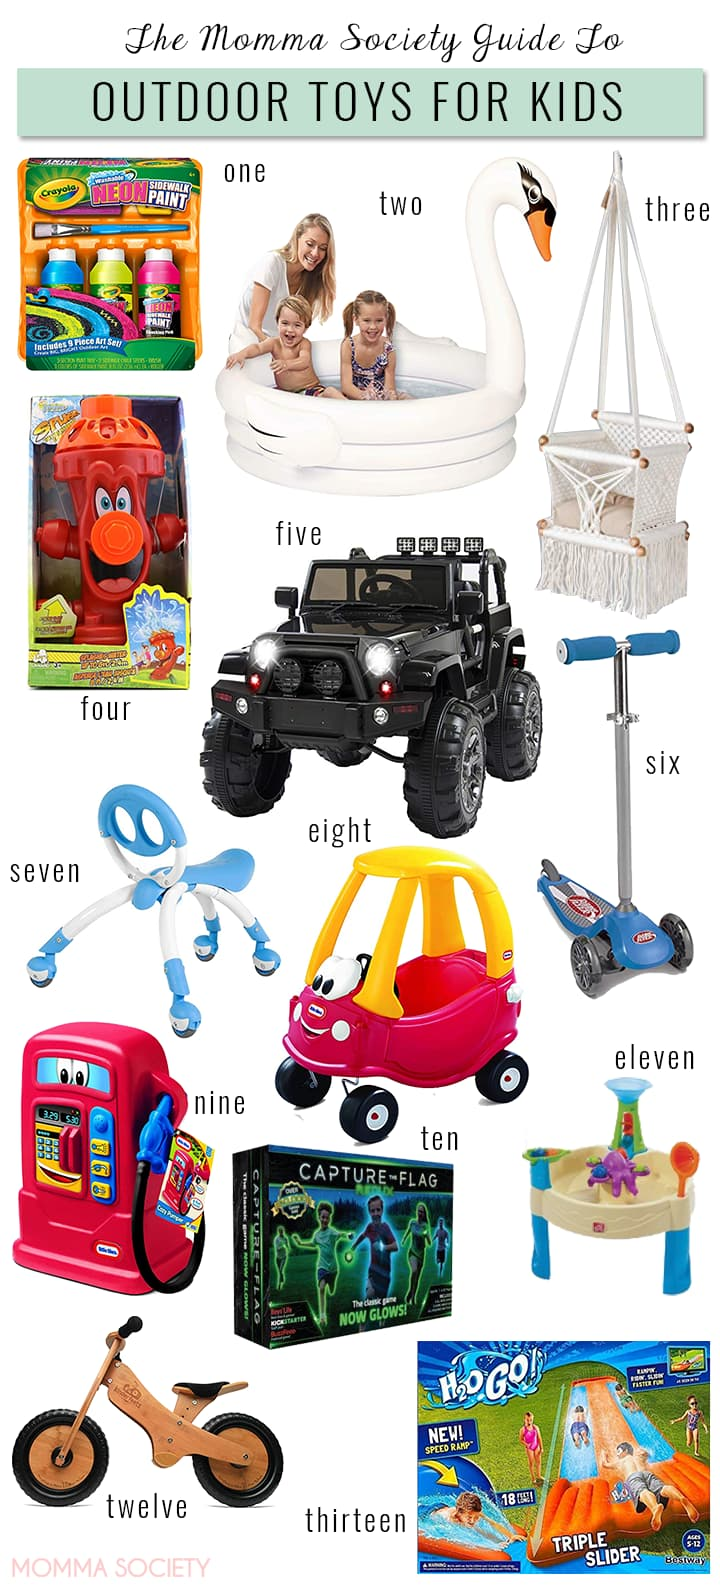 Our Favorite Outdoor Toys | Momma Society